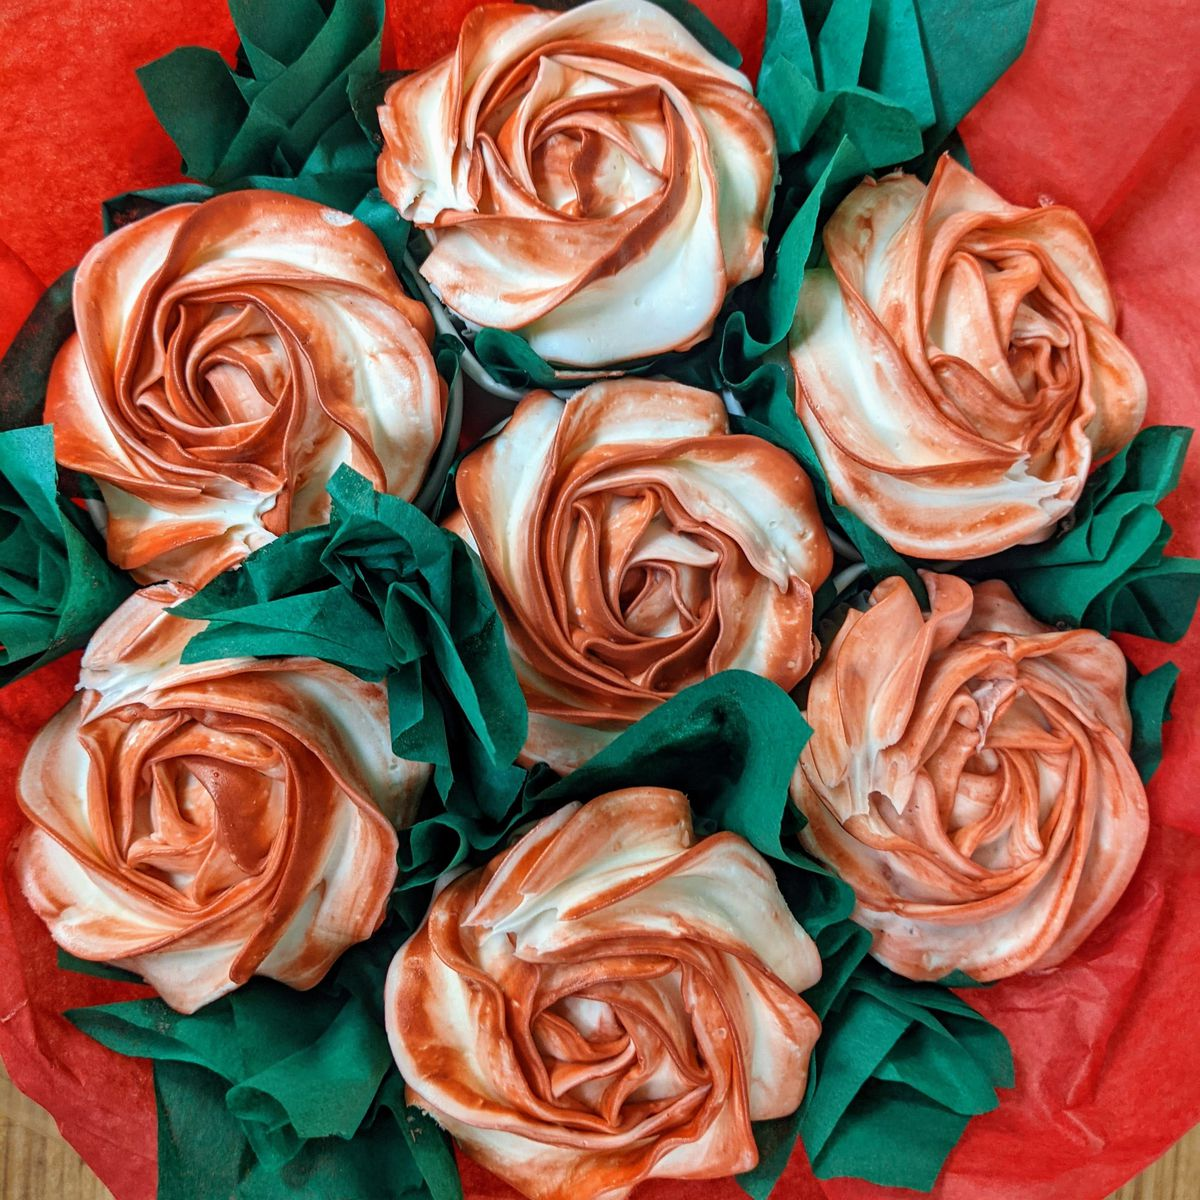 Seven cupcakes in a circle decorated to look like roses.